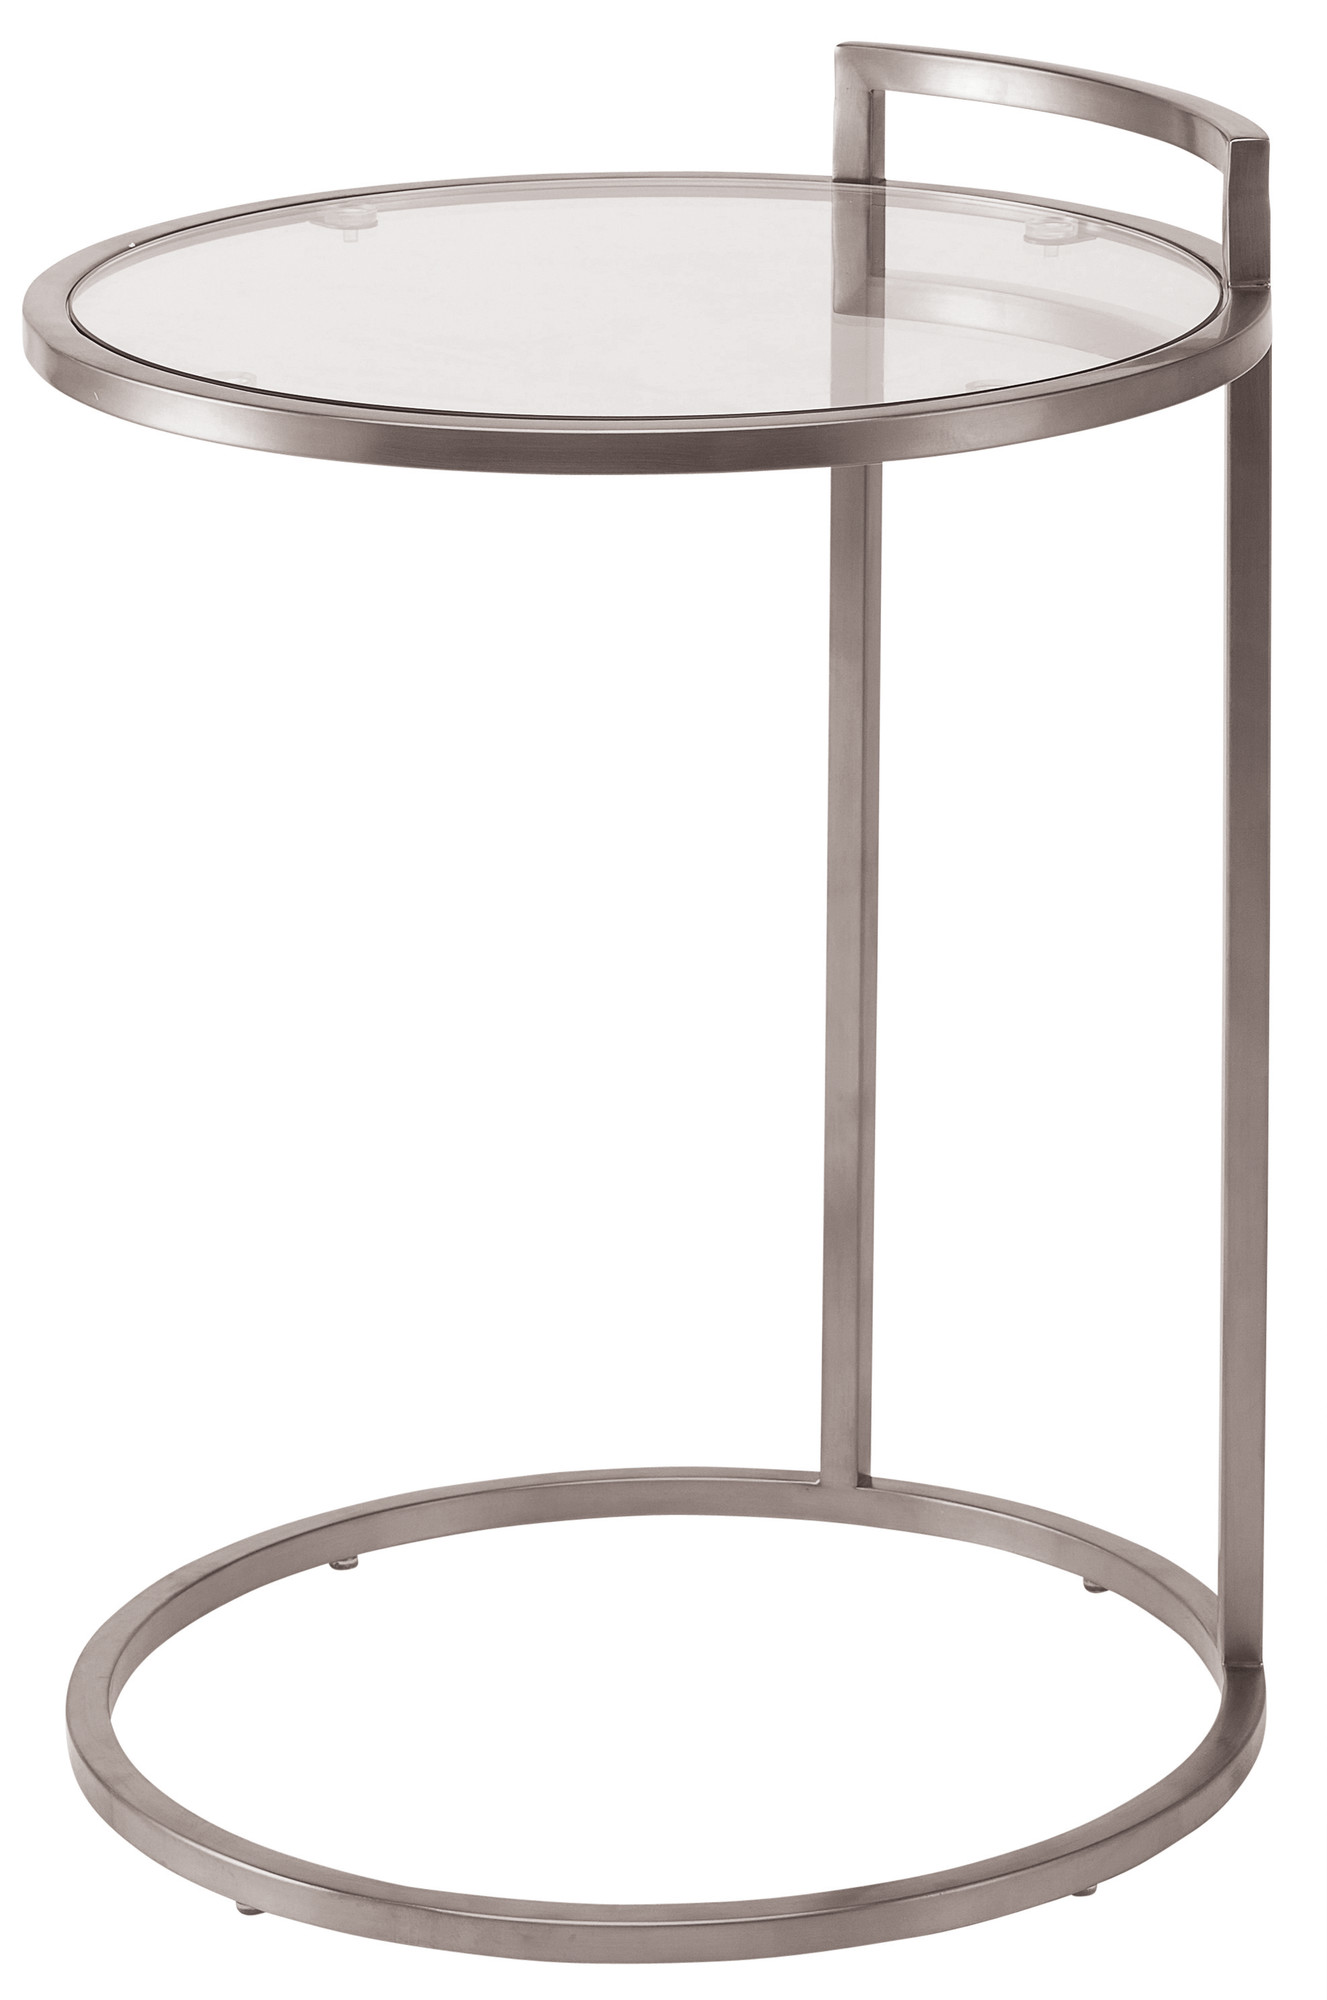 side tables for office. lilysidetablestainlesssteeljpg side tables for office